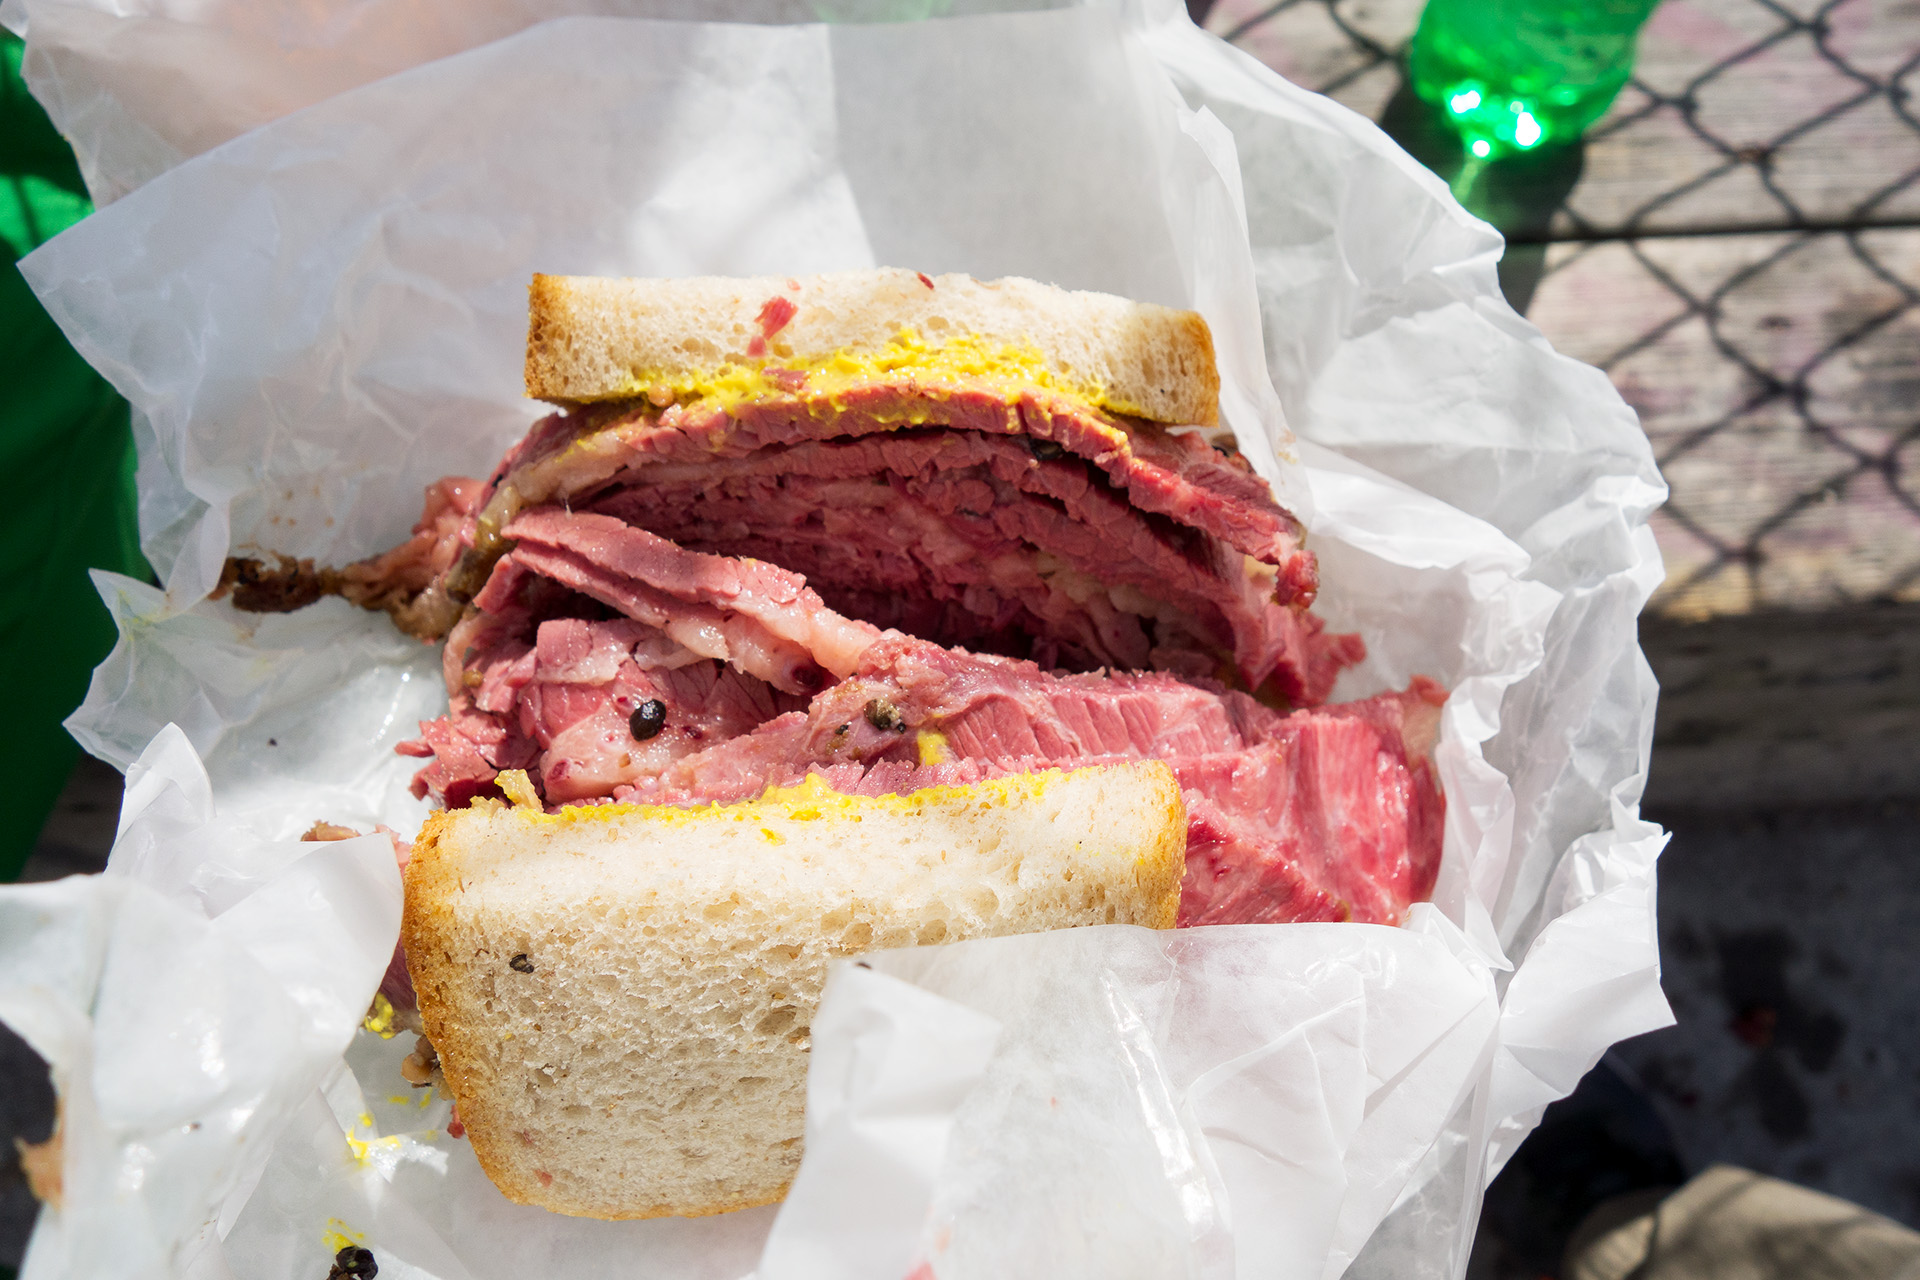 The smoked meat sandwich with mustard from Schwartz's Deli.